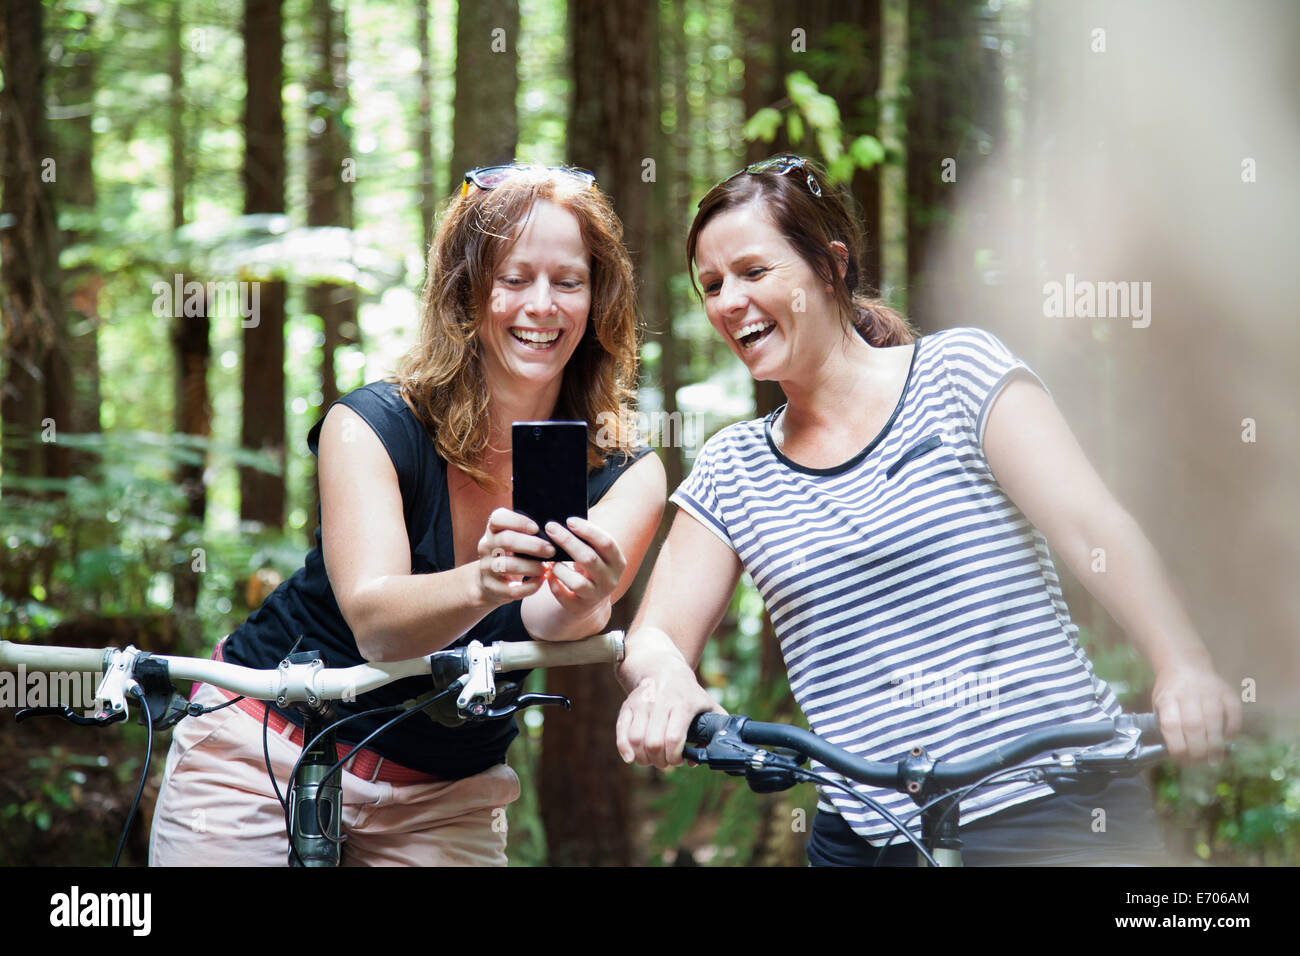 Two women mountain bikers looking at smartphone in forest - Stock Image